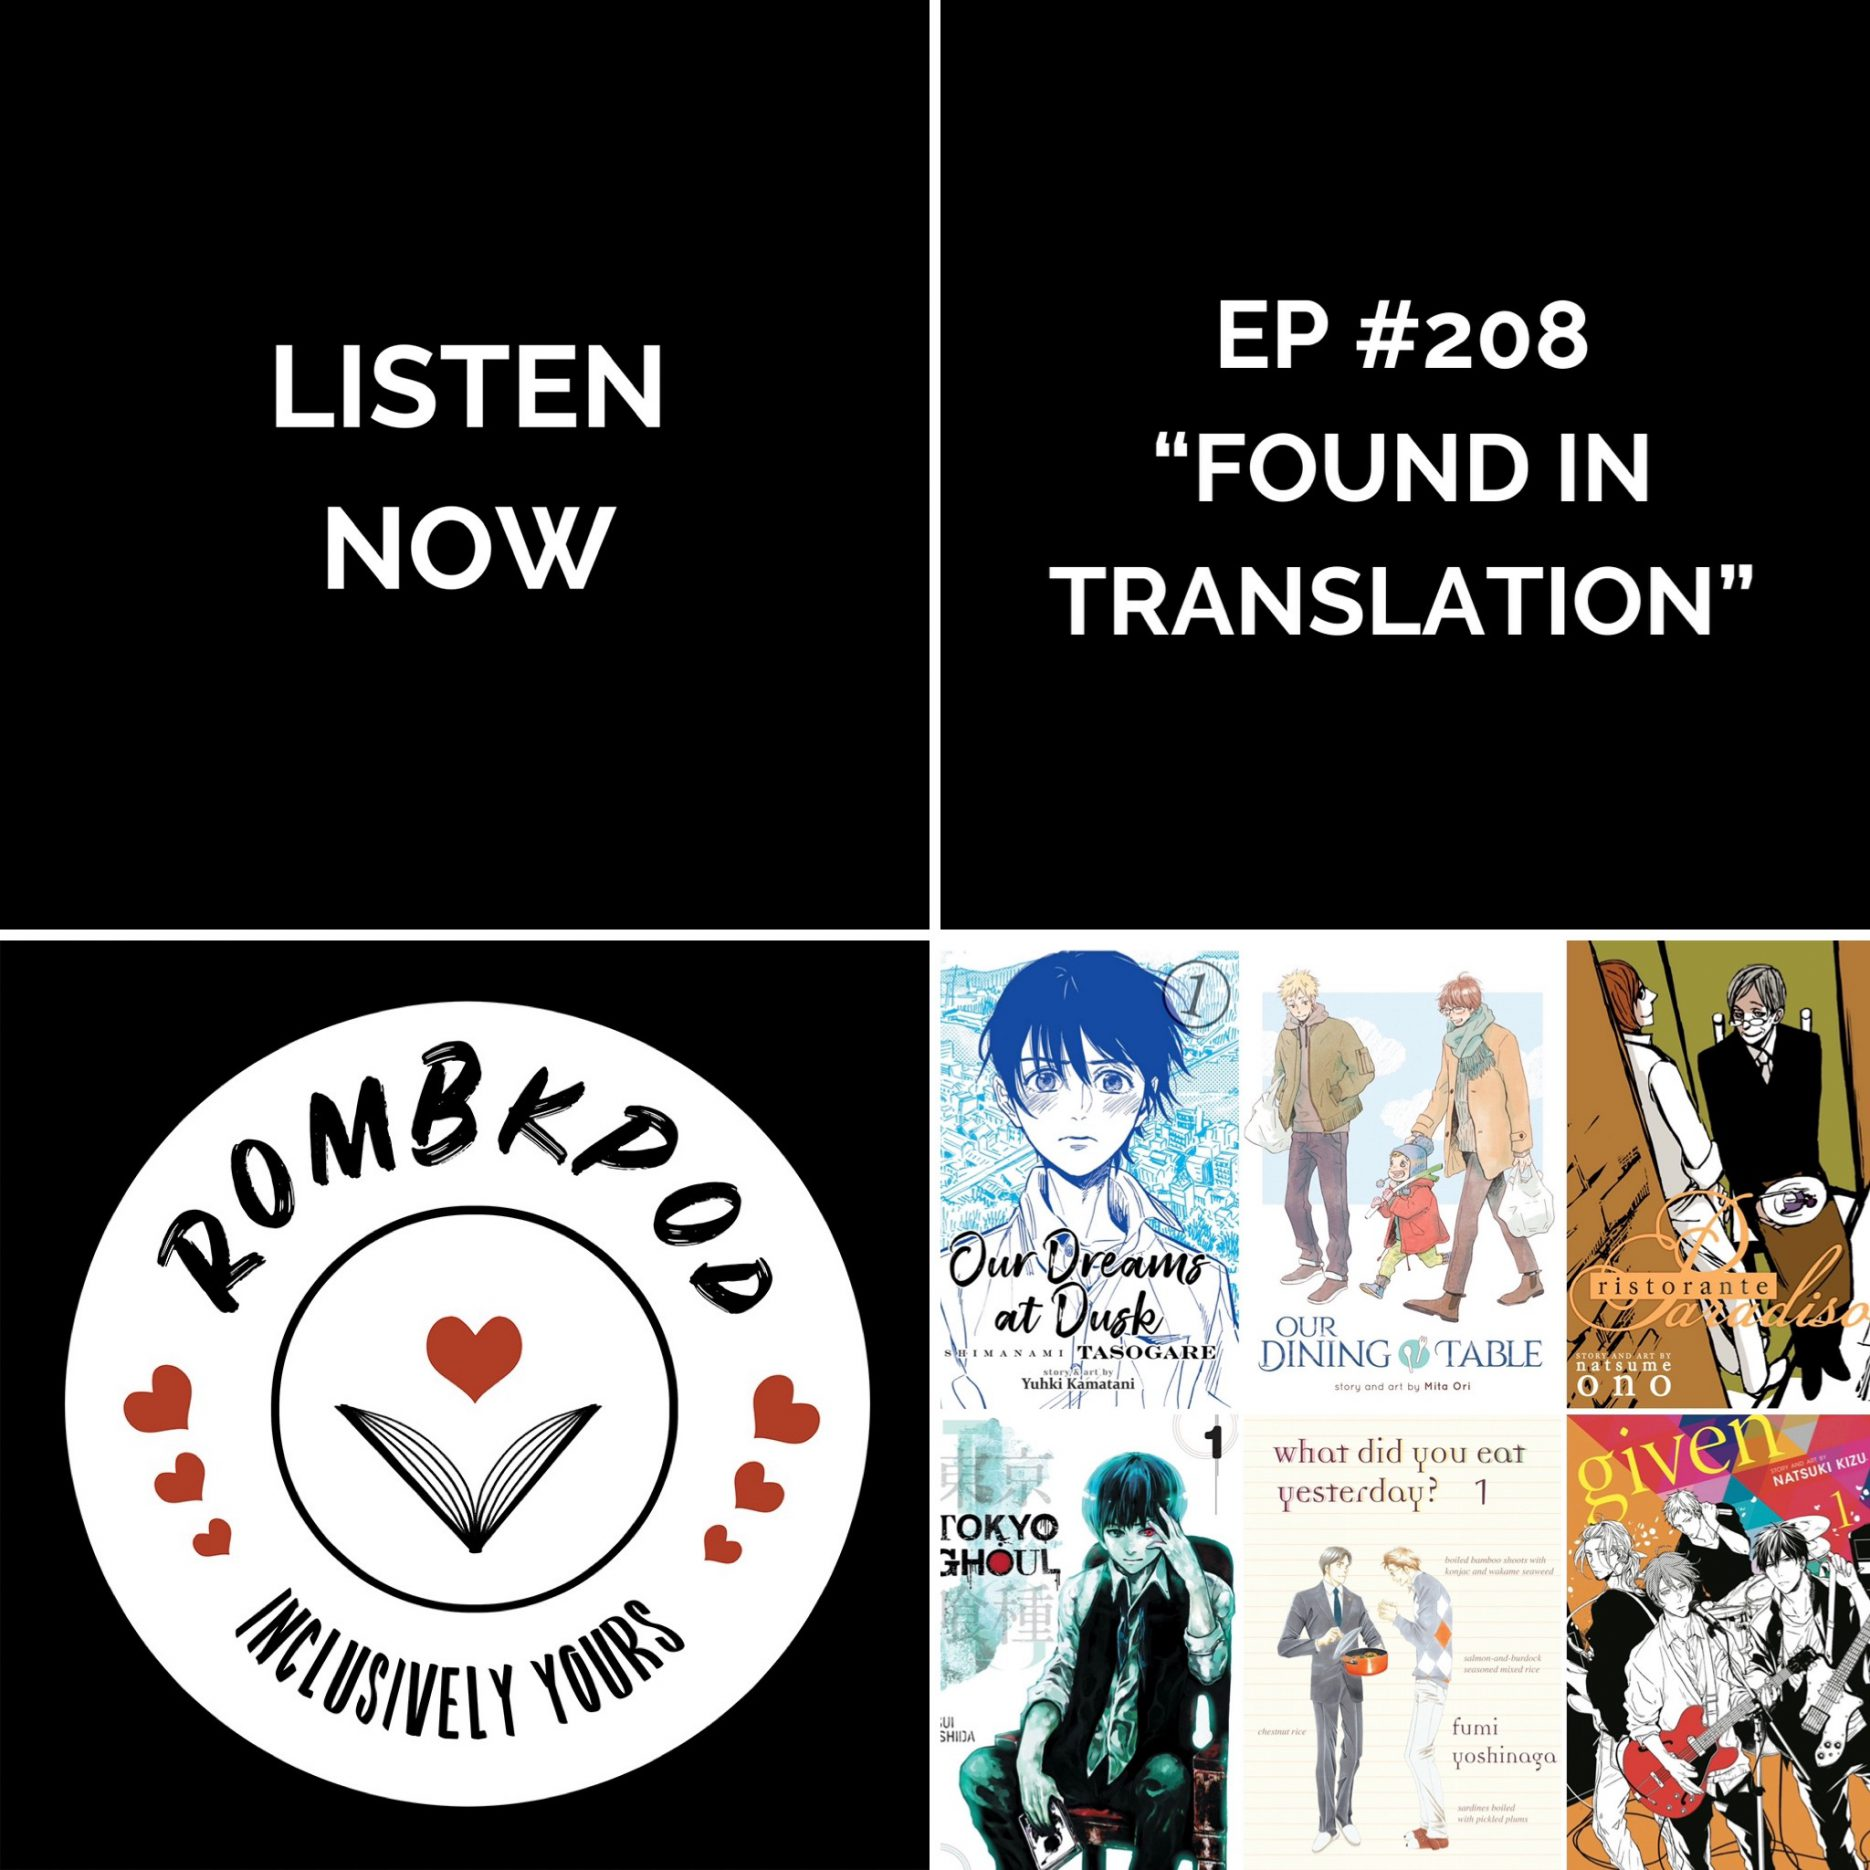 """IMAGE: lower left corner, RomBkPod heart logo; lower right corner ep #208 cover collage; IMAGE TEXT: Listen Now, """"Found in Translation"""""""